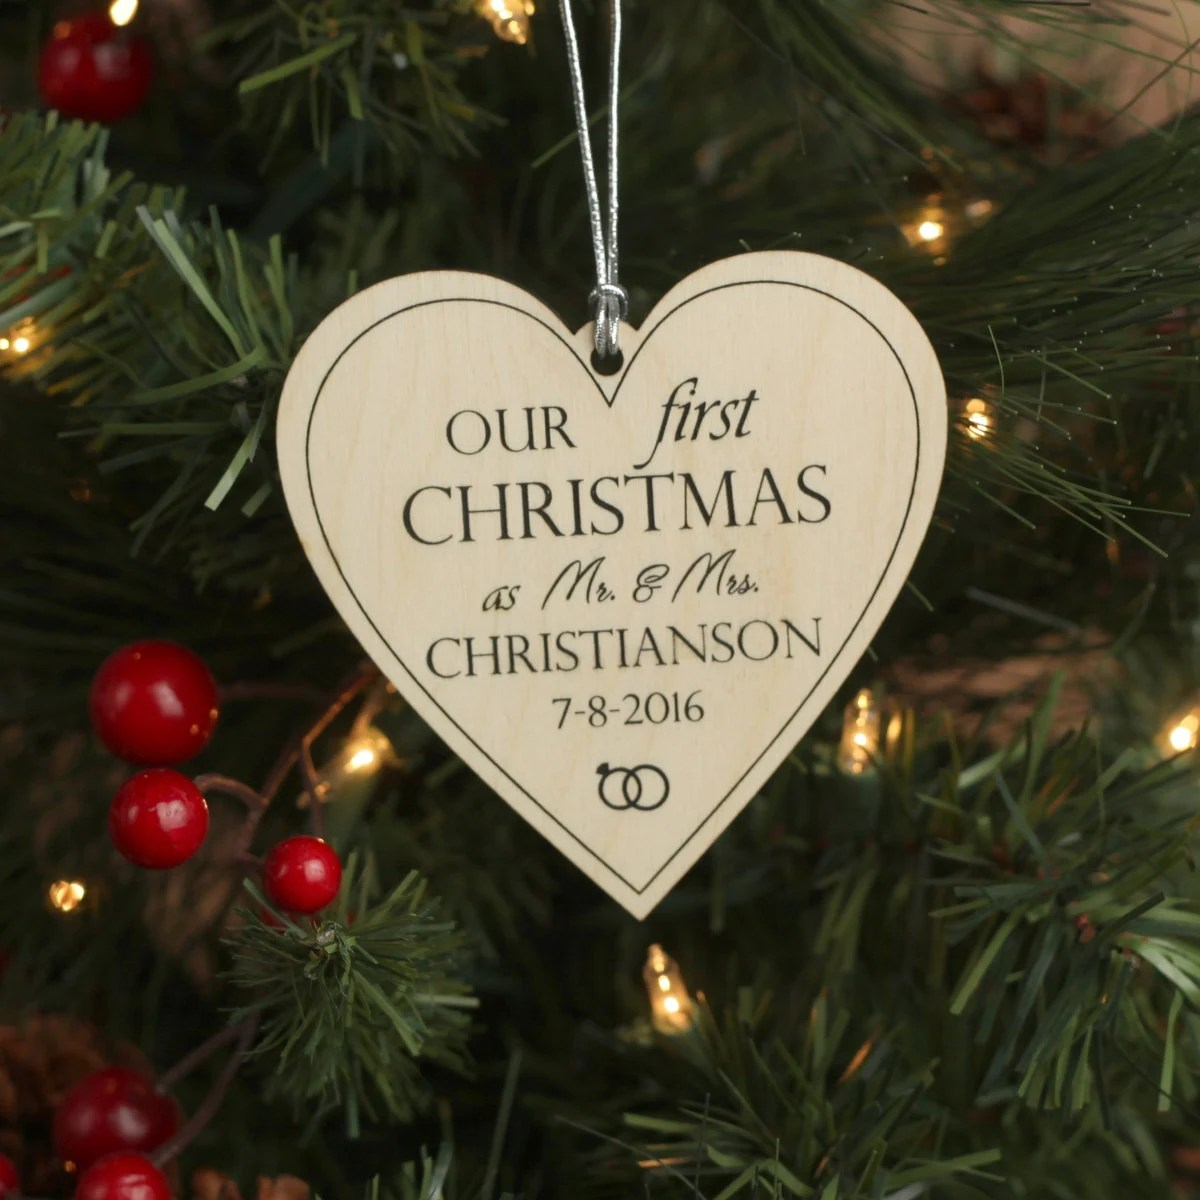 Comely Our Heart Ornament Personalized Ornaments Newlyweds Just Married Custom Ornament Our Heart Ornament Personalized inspiration Our First Christmas